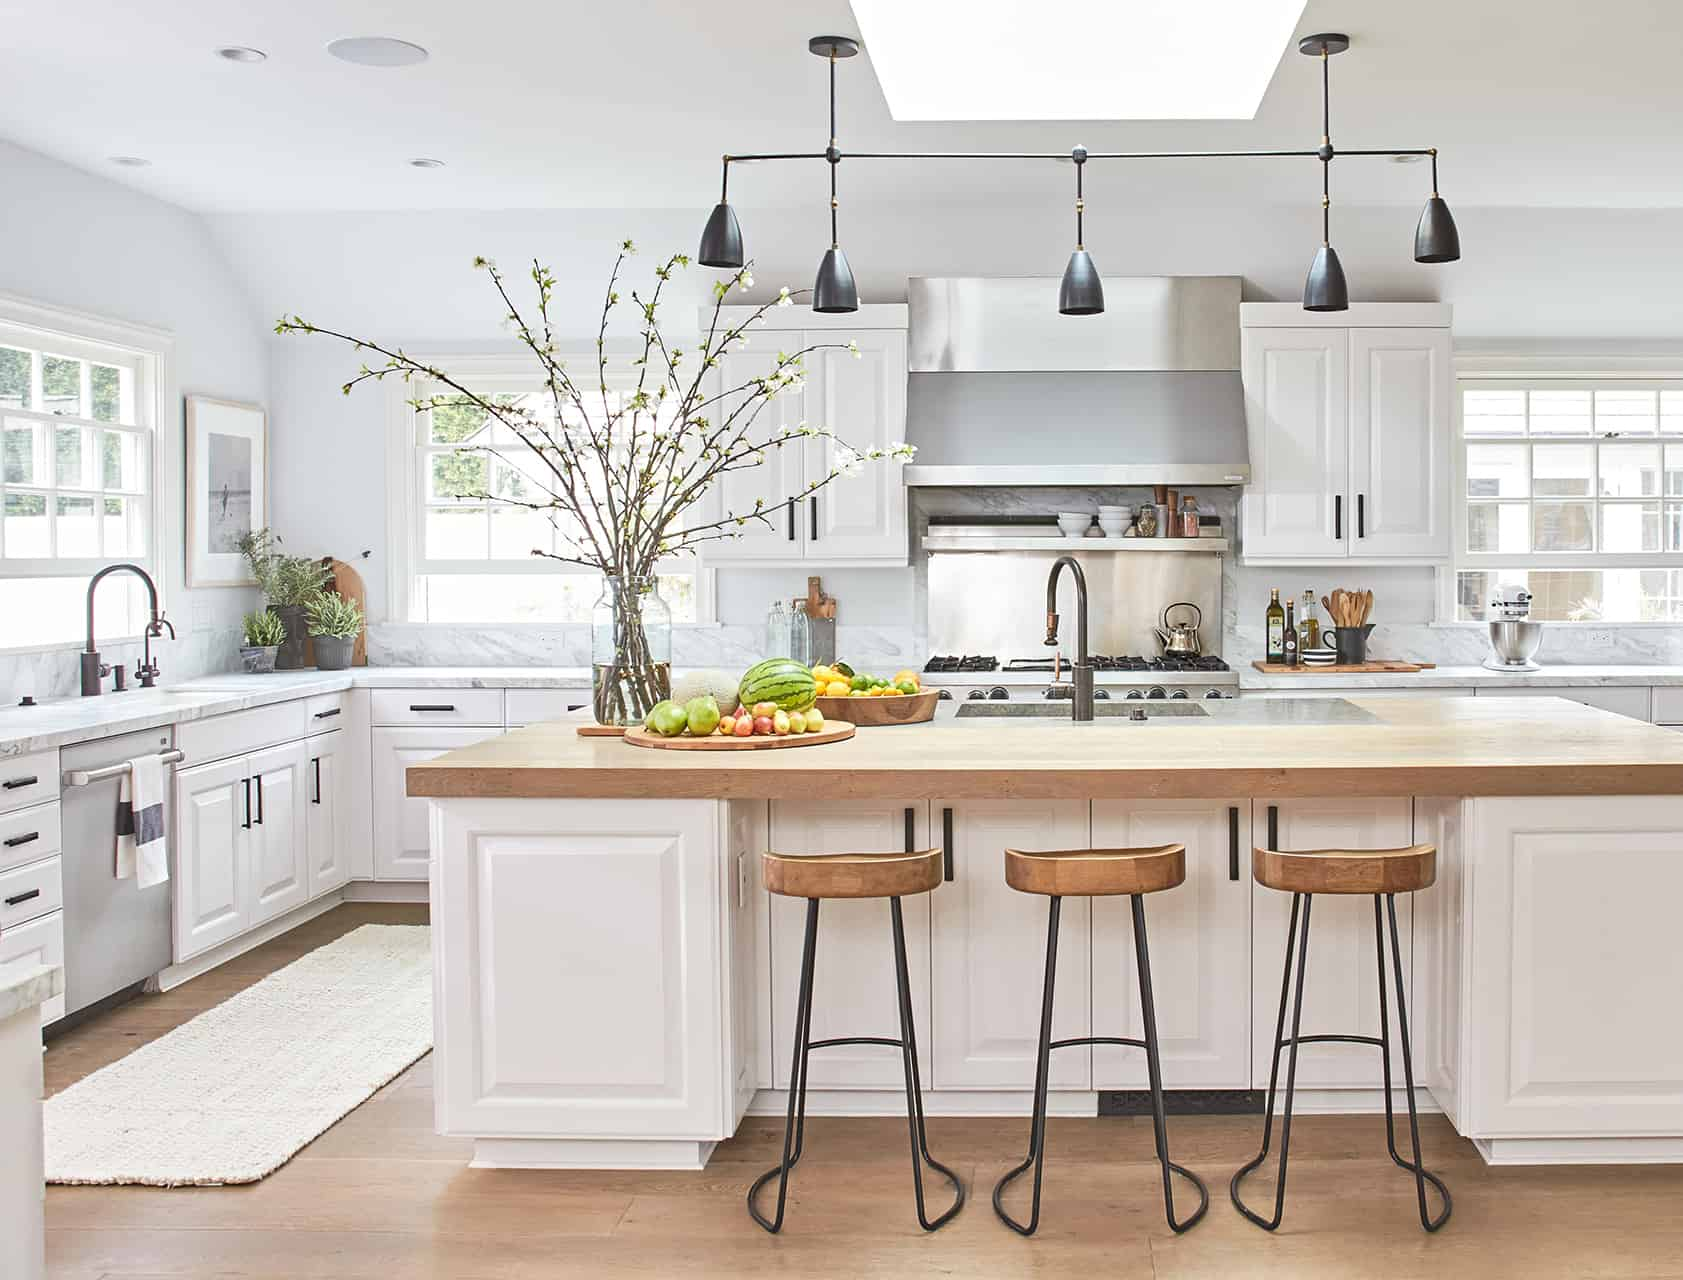 kitchen with items on countertops